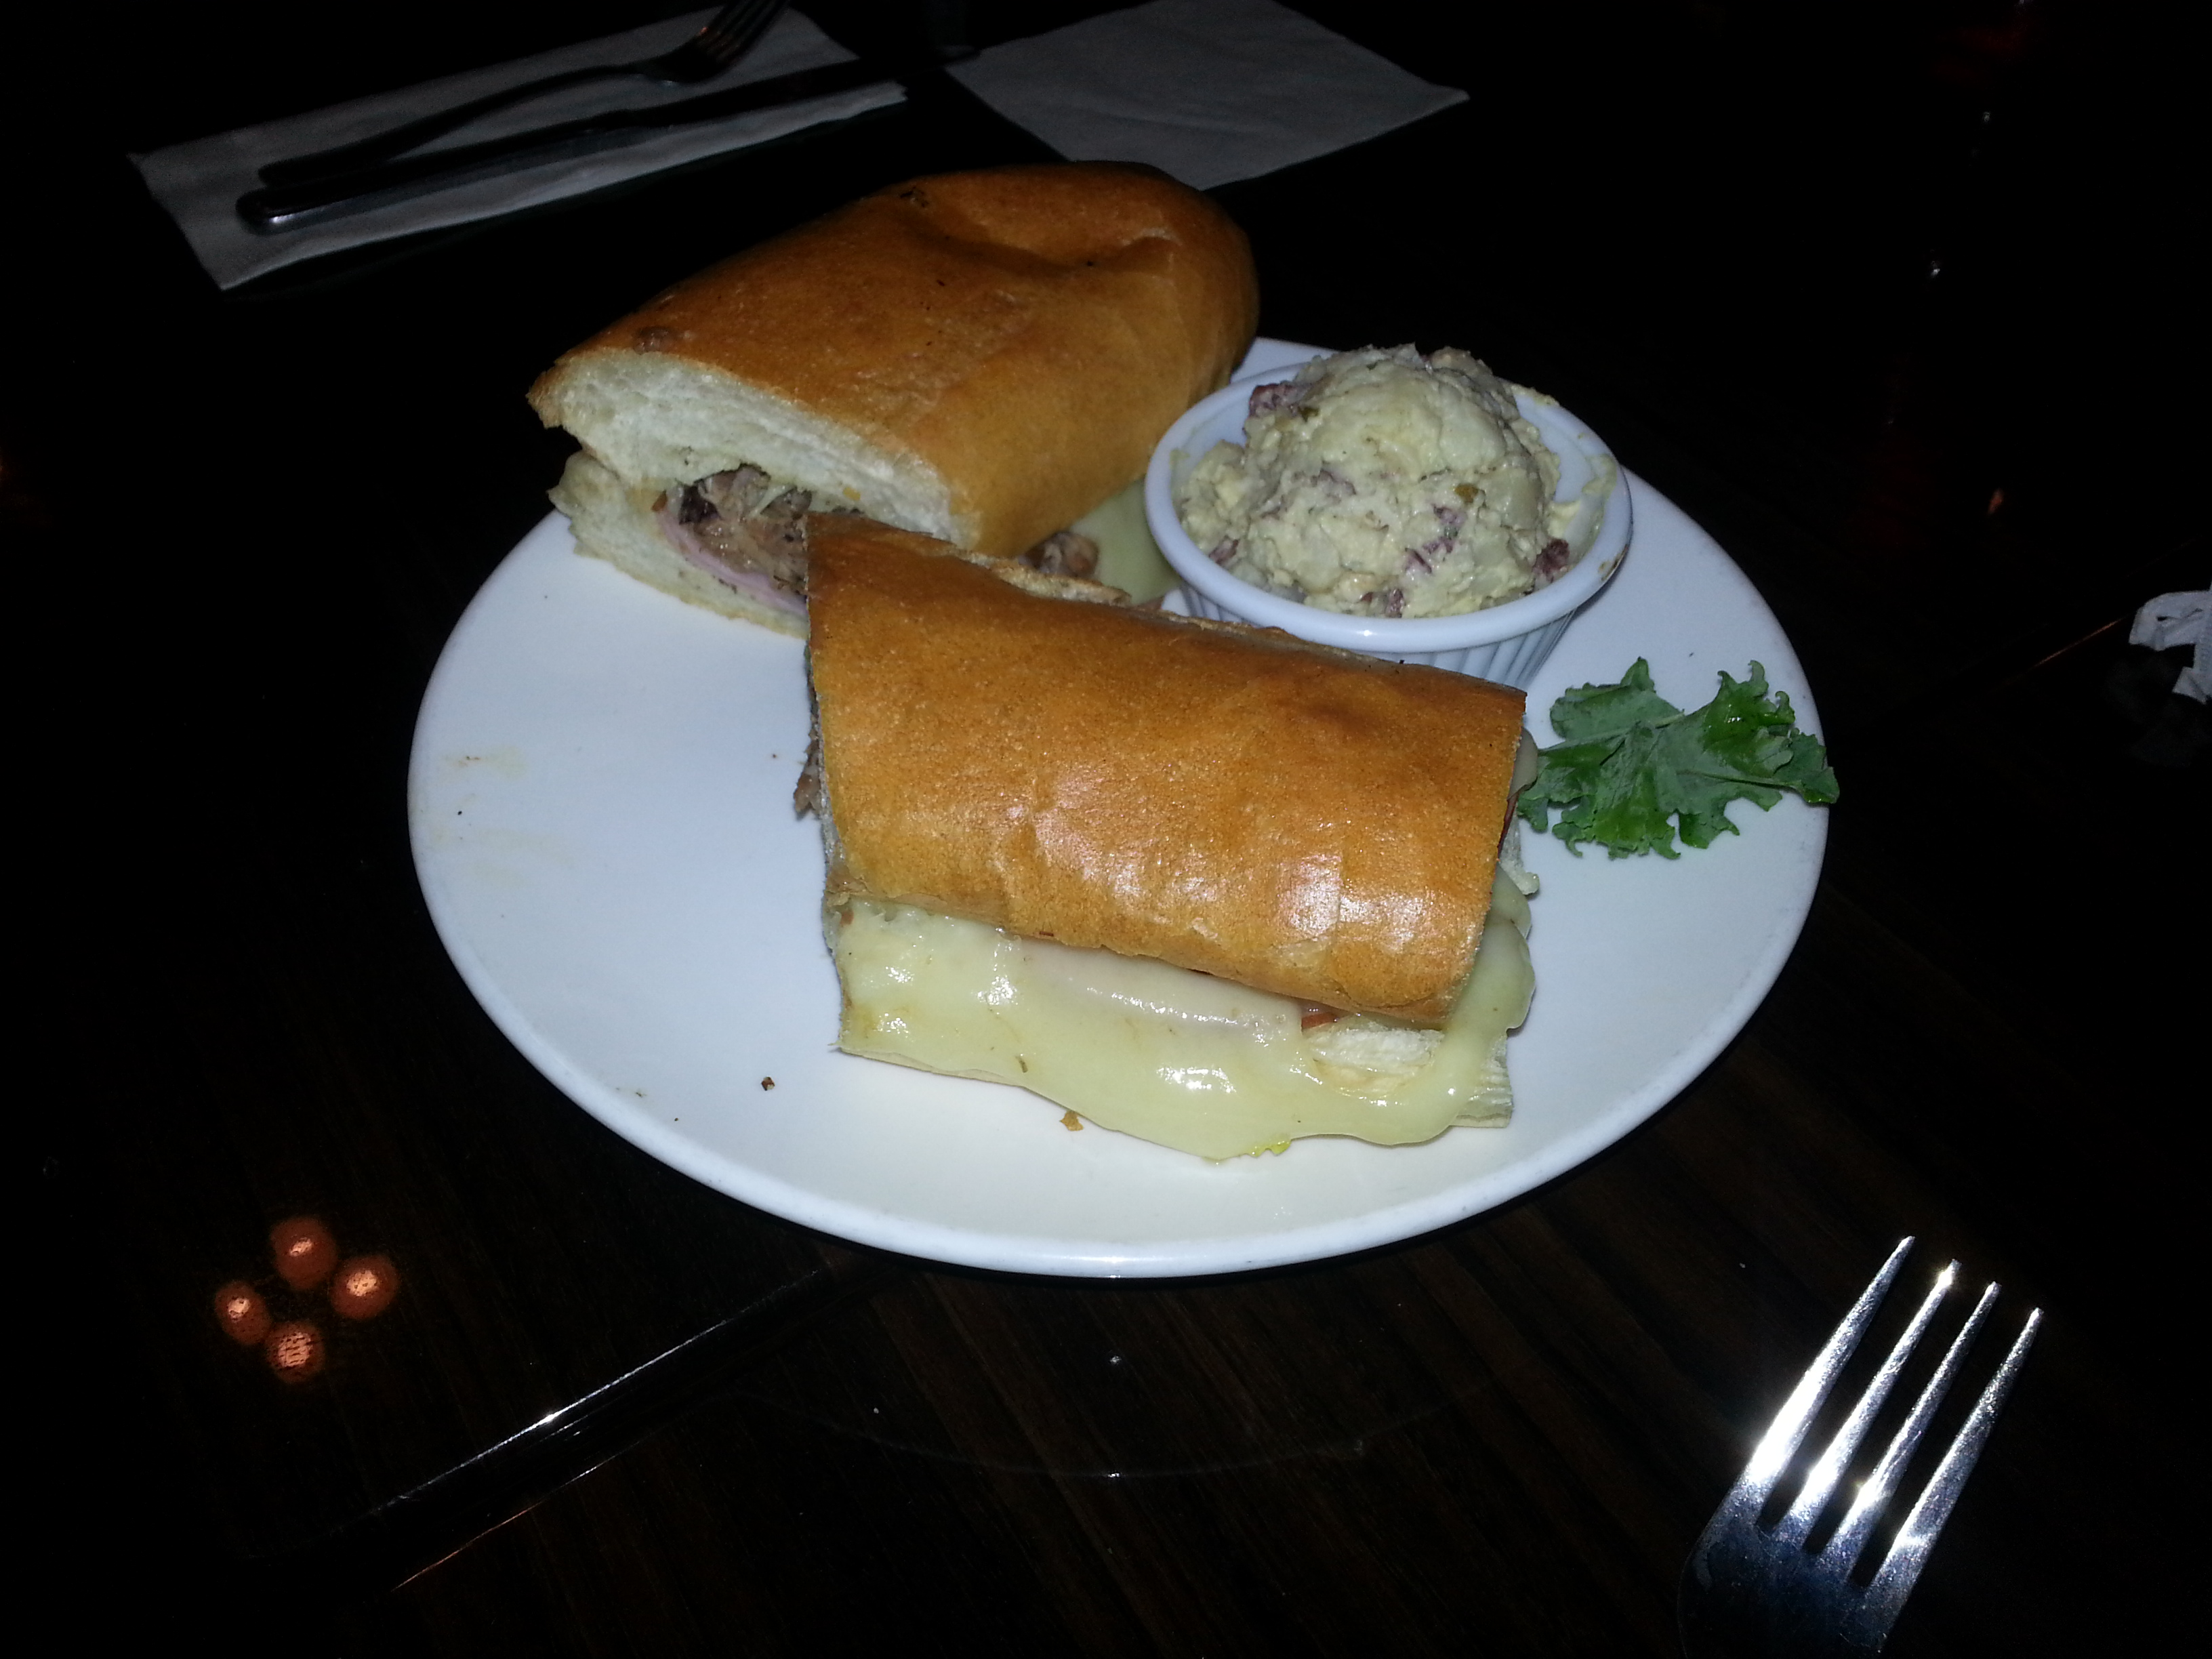 Philly cheesesteak? Po Boy at Ricky P's